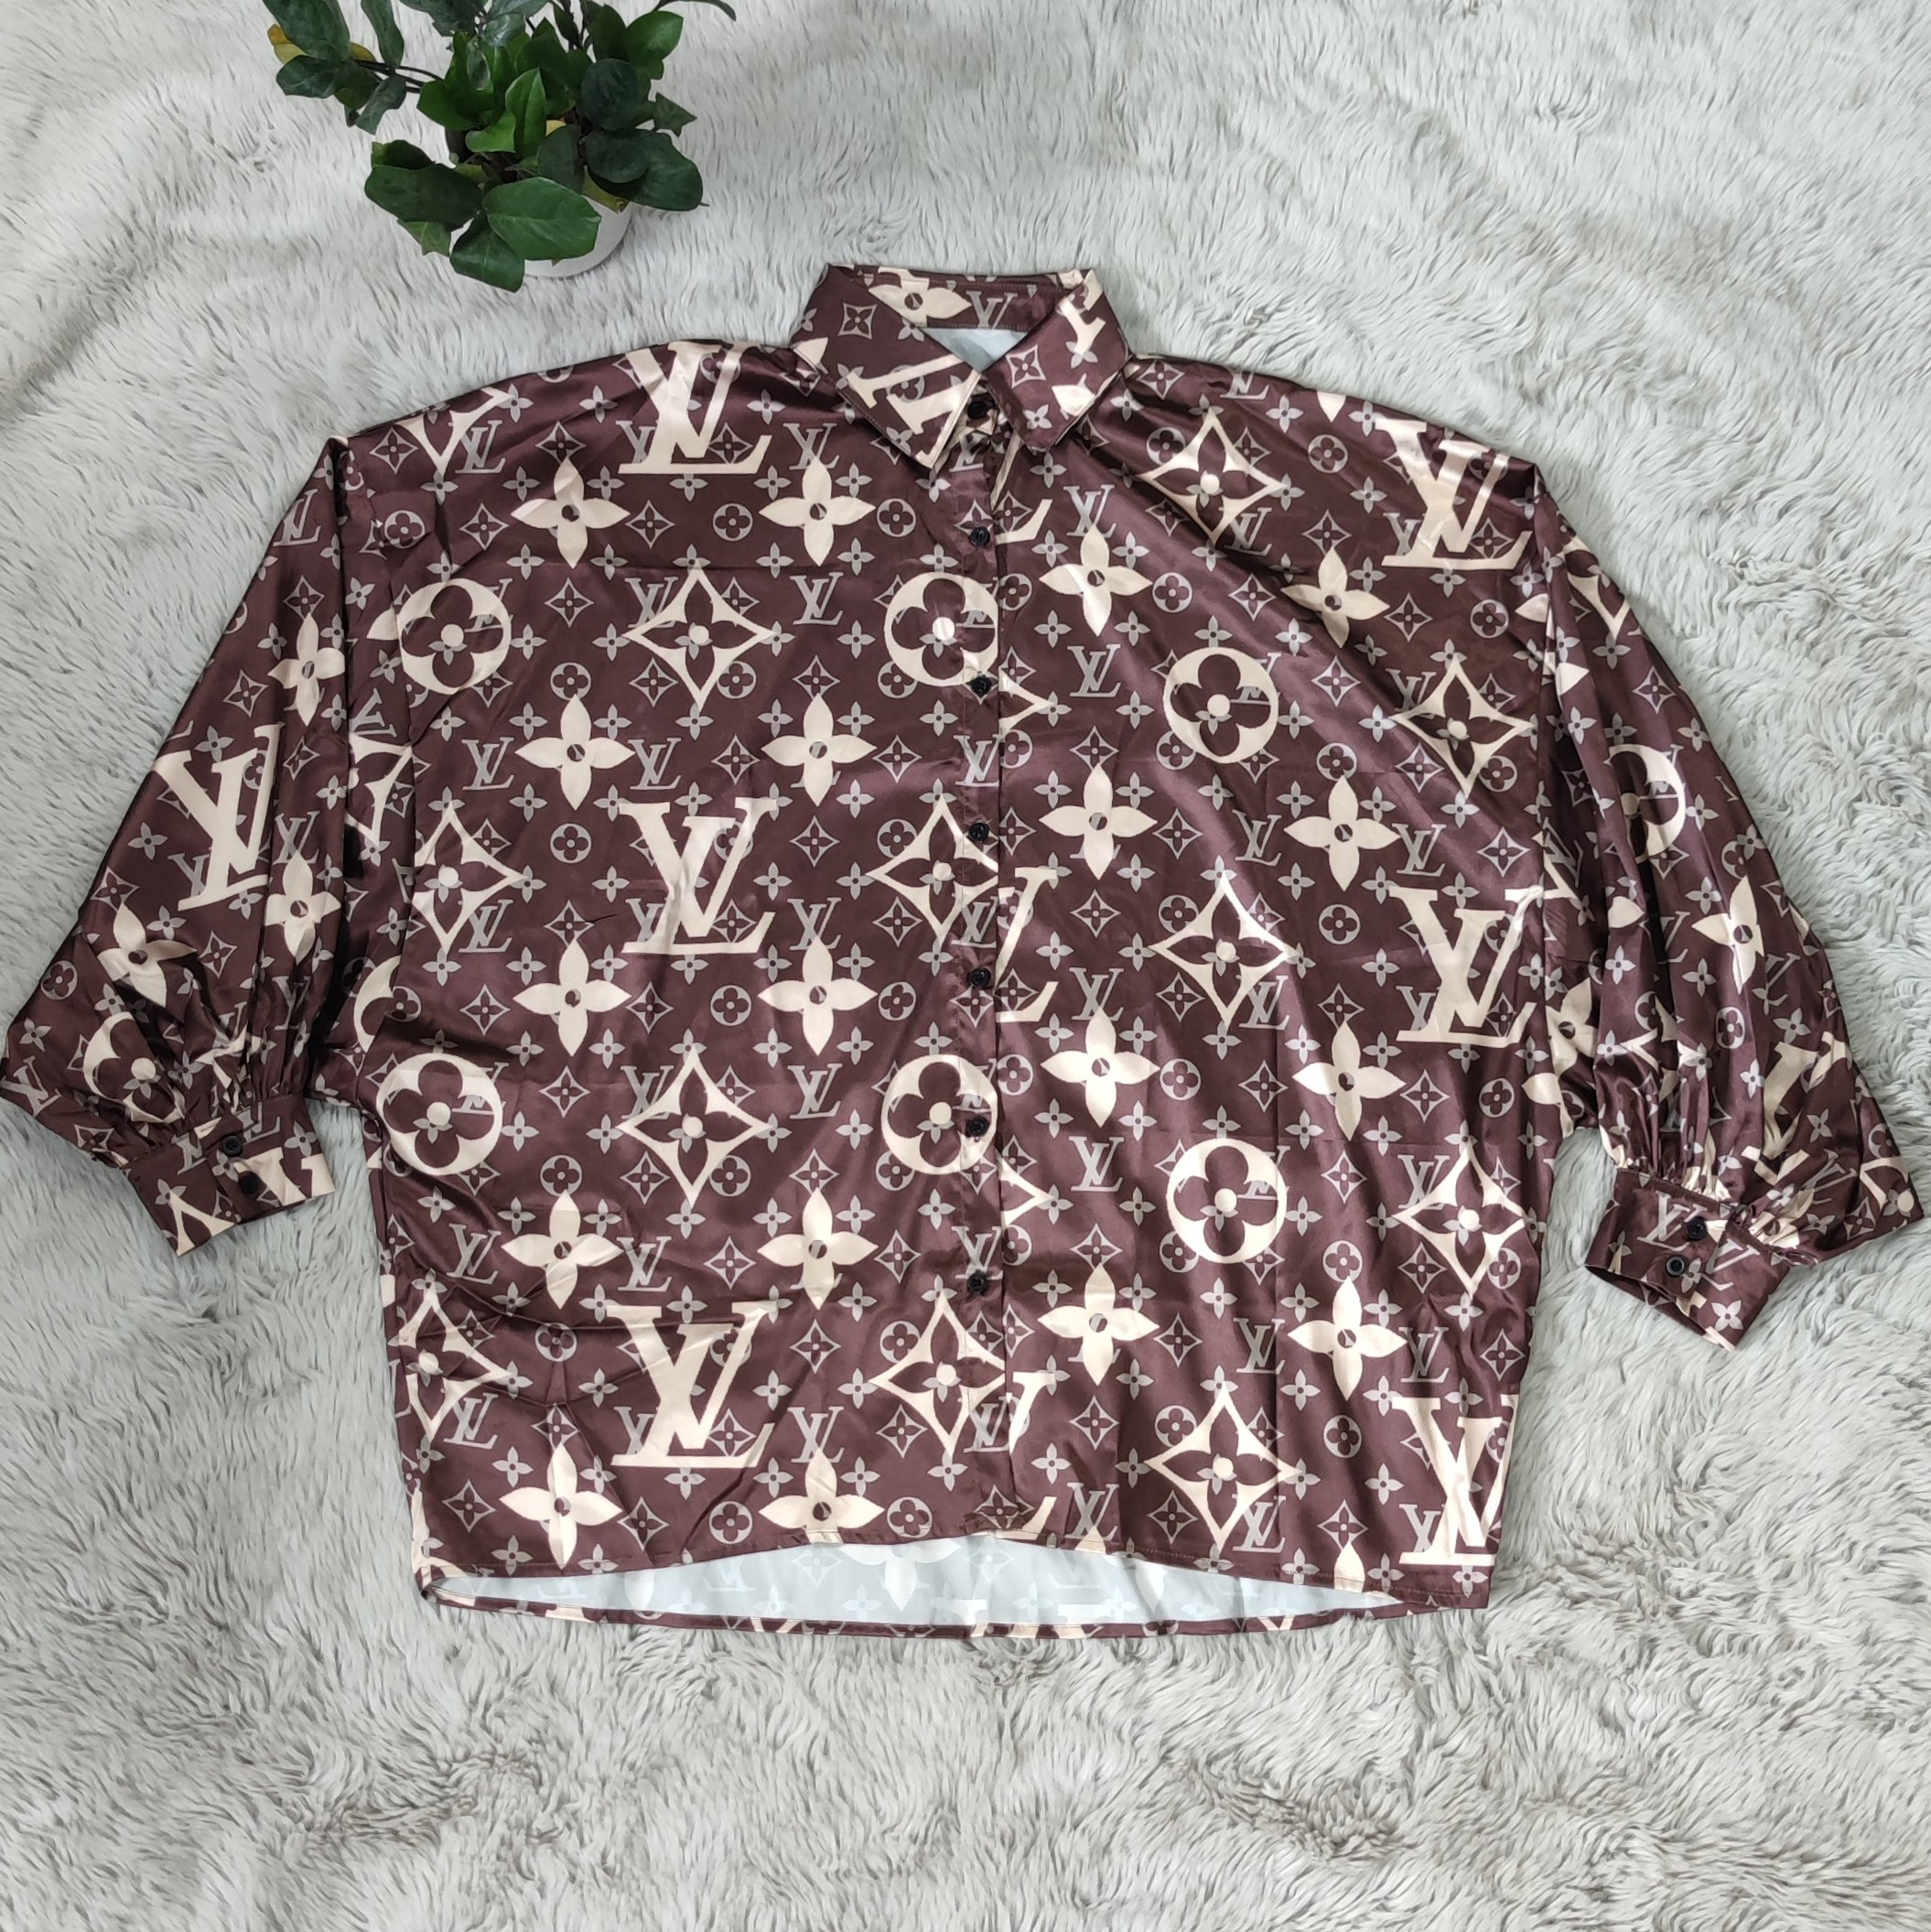 Image of LV Louis vuitton new fashion women's digital printing casual loose long-sleeved shirt